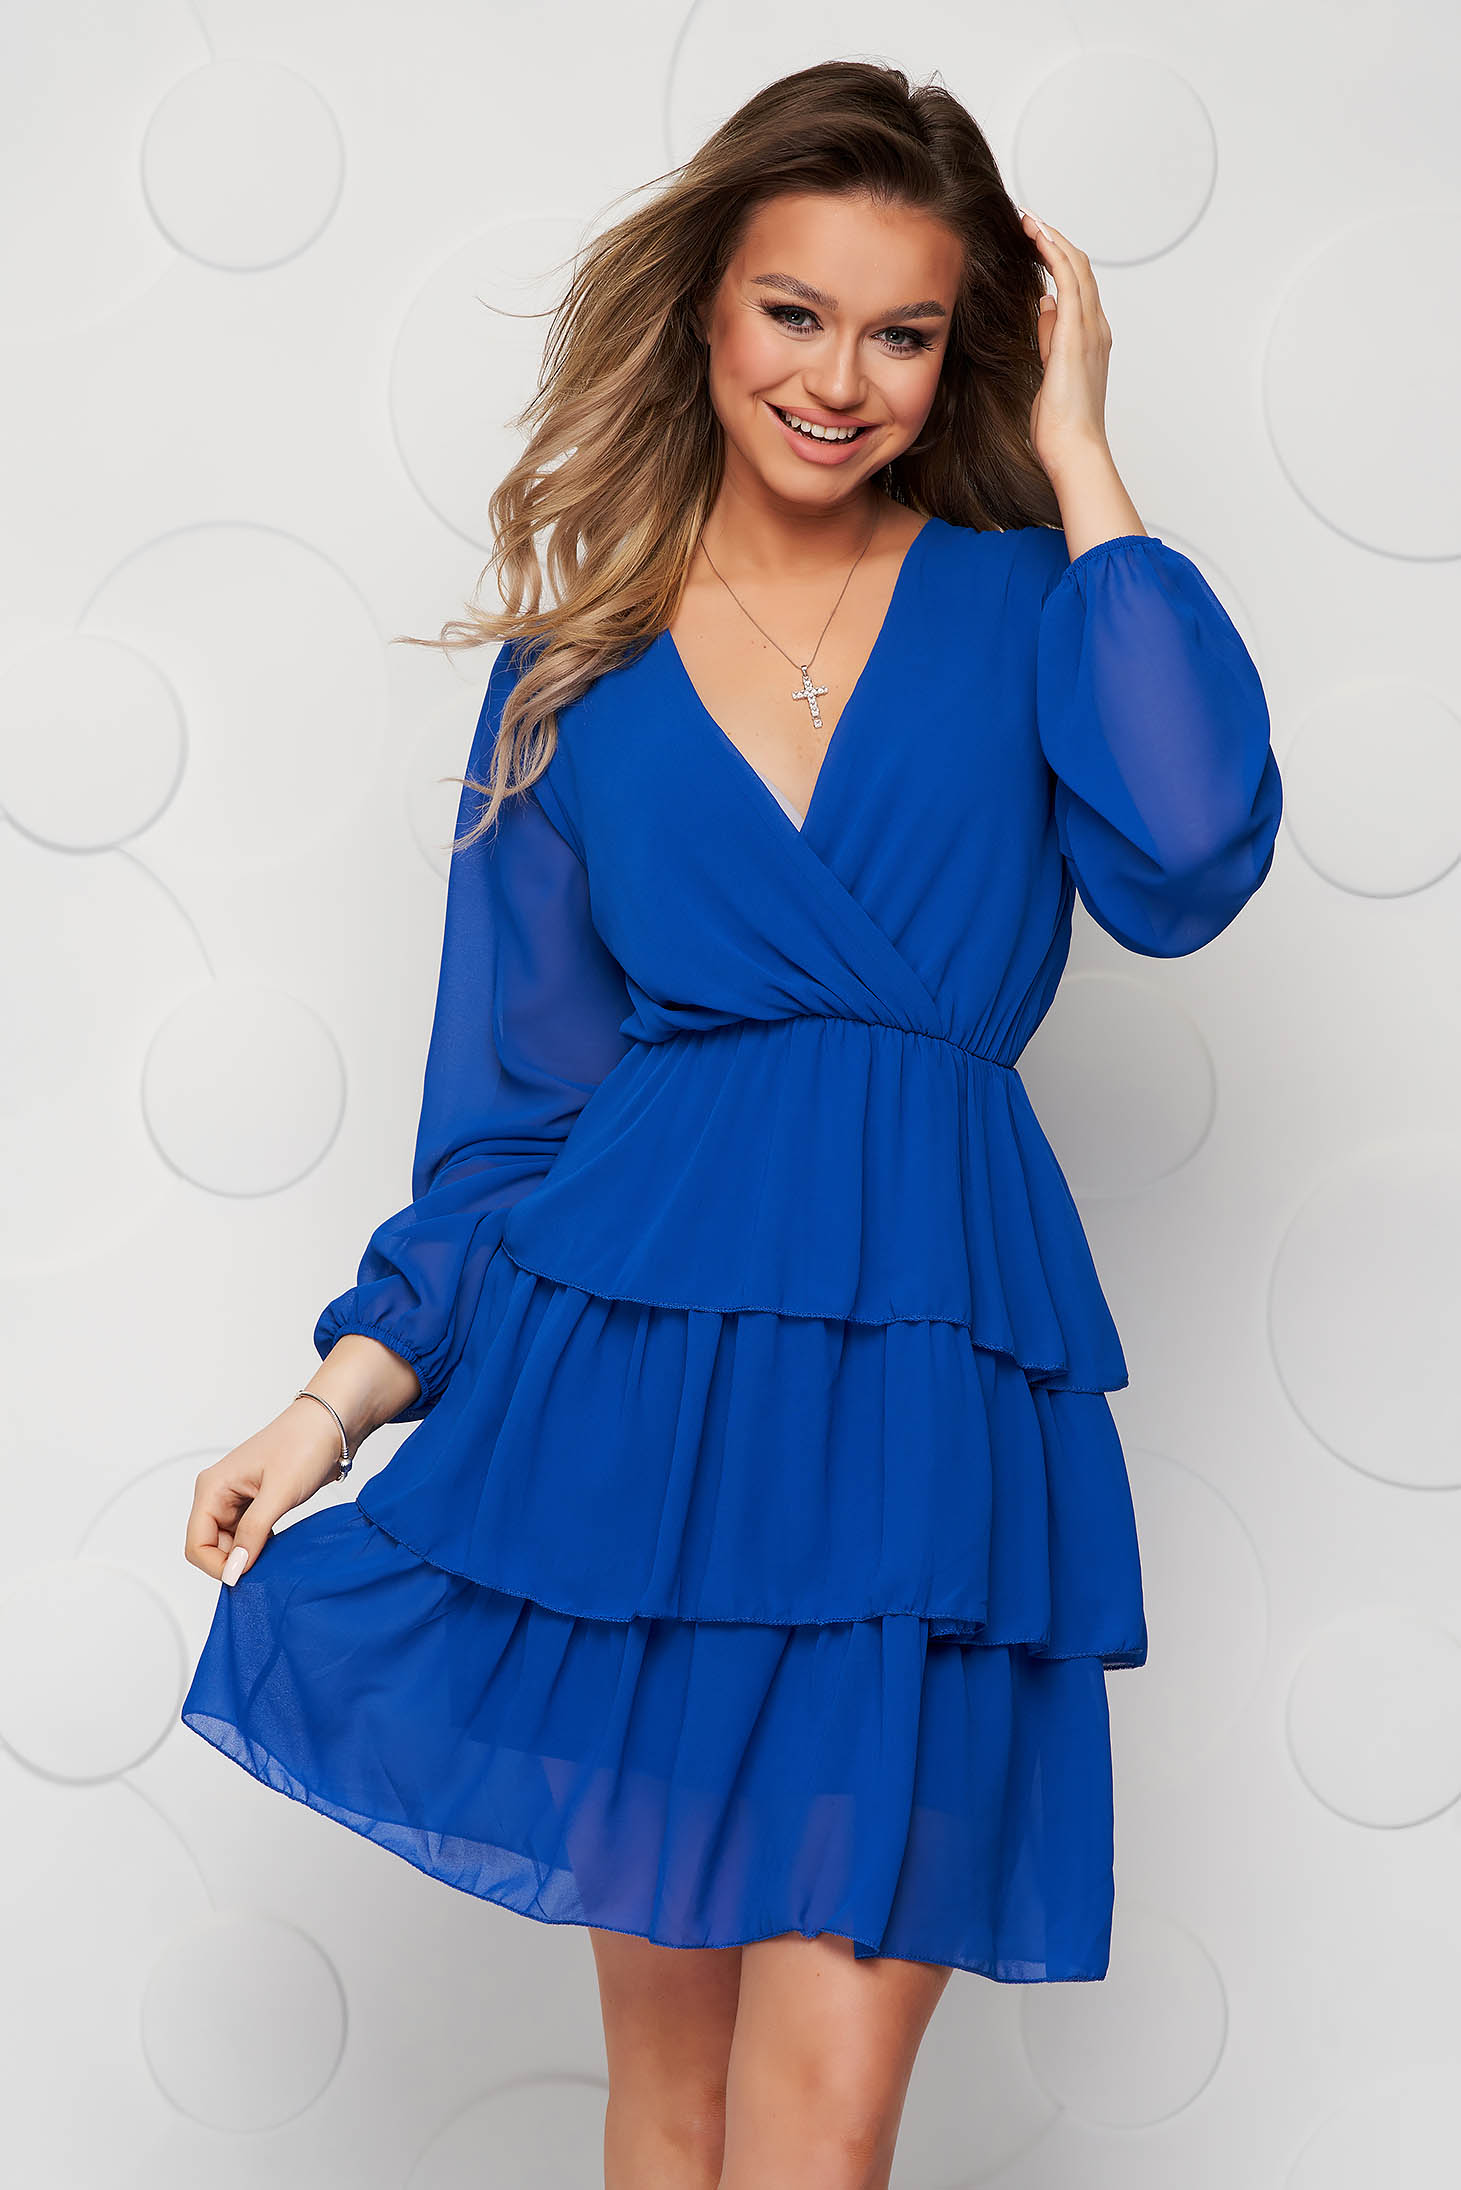 Blue dress cloche with elastic waist from veil fabric with ruffle details short lining under the skirt